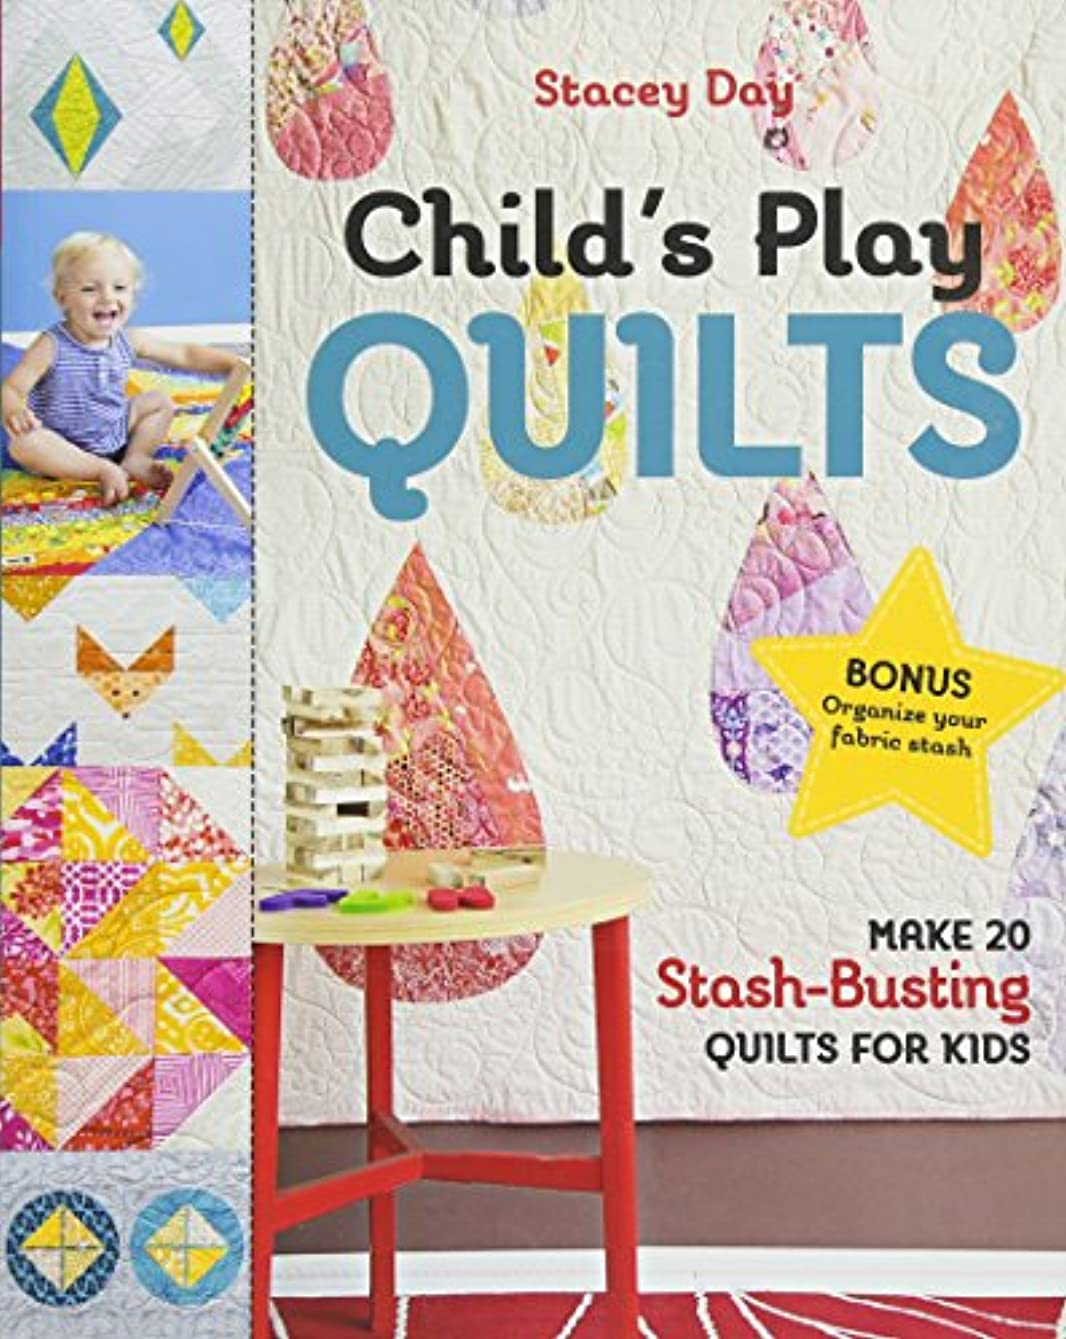 Child's Play Quilts: Make 20 Stash-Busting Quilts for Kids bzbrmn400658